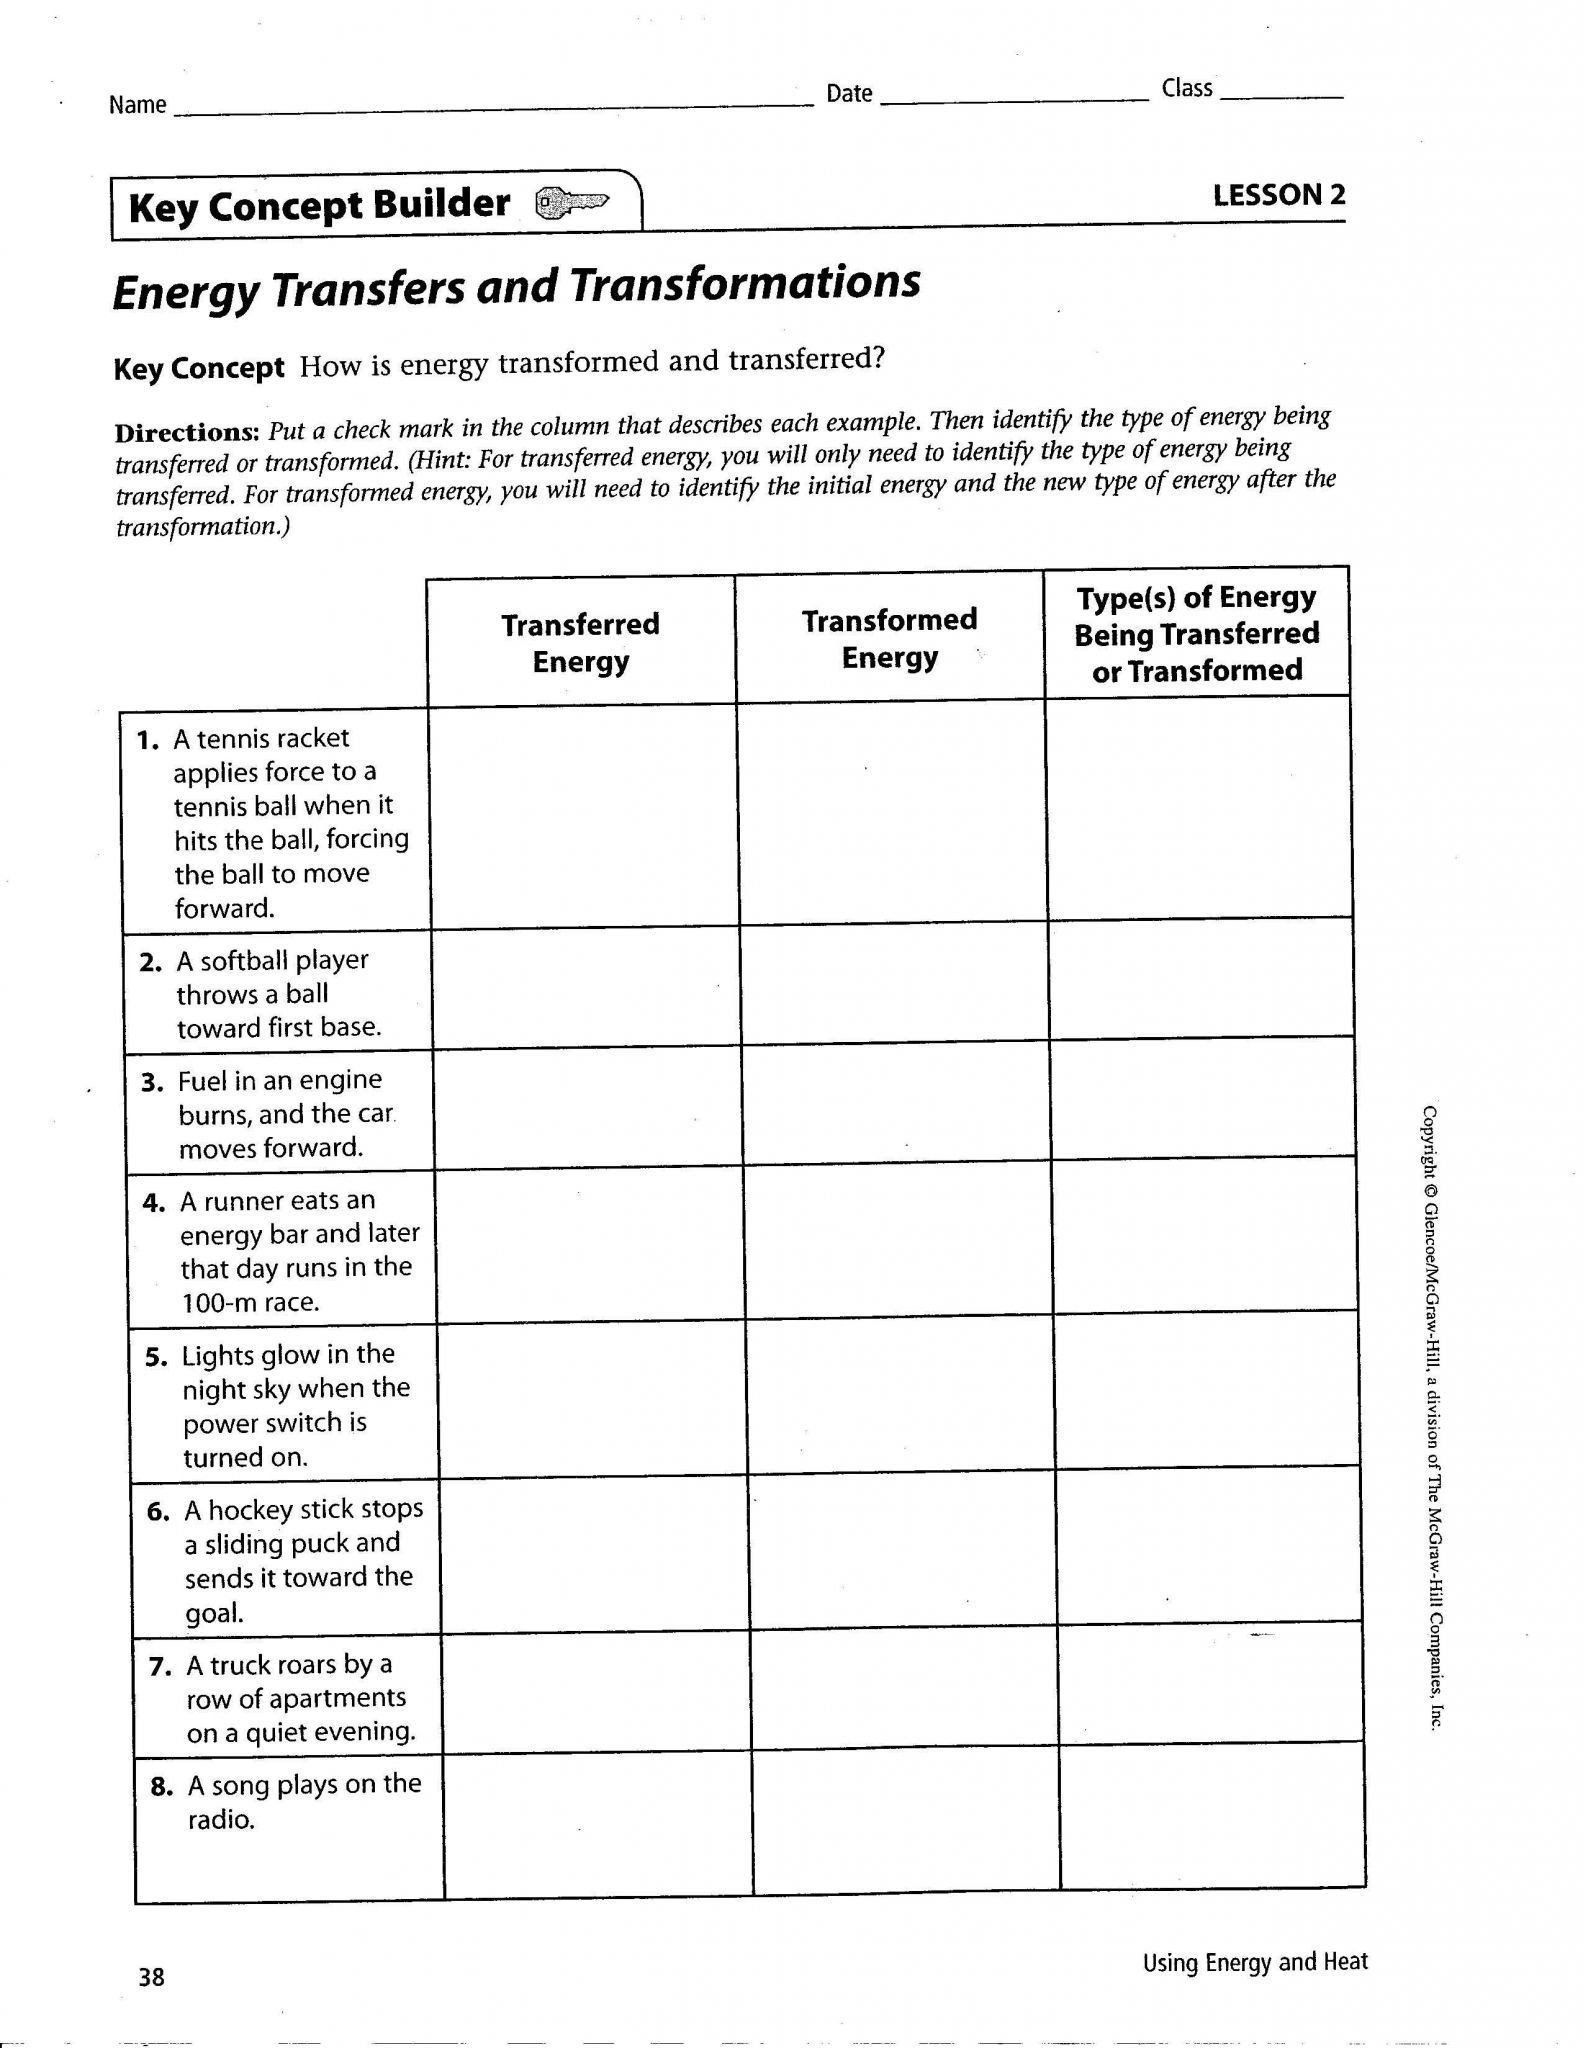 Energy Transformation Worksheets Middle School Energy Transformation Worksheet Middle School In 2020